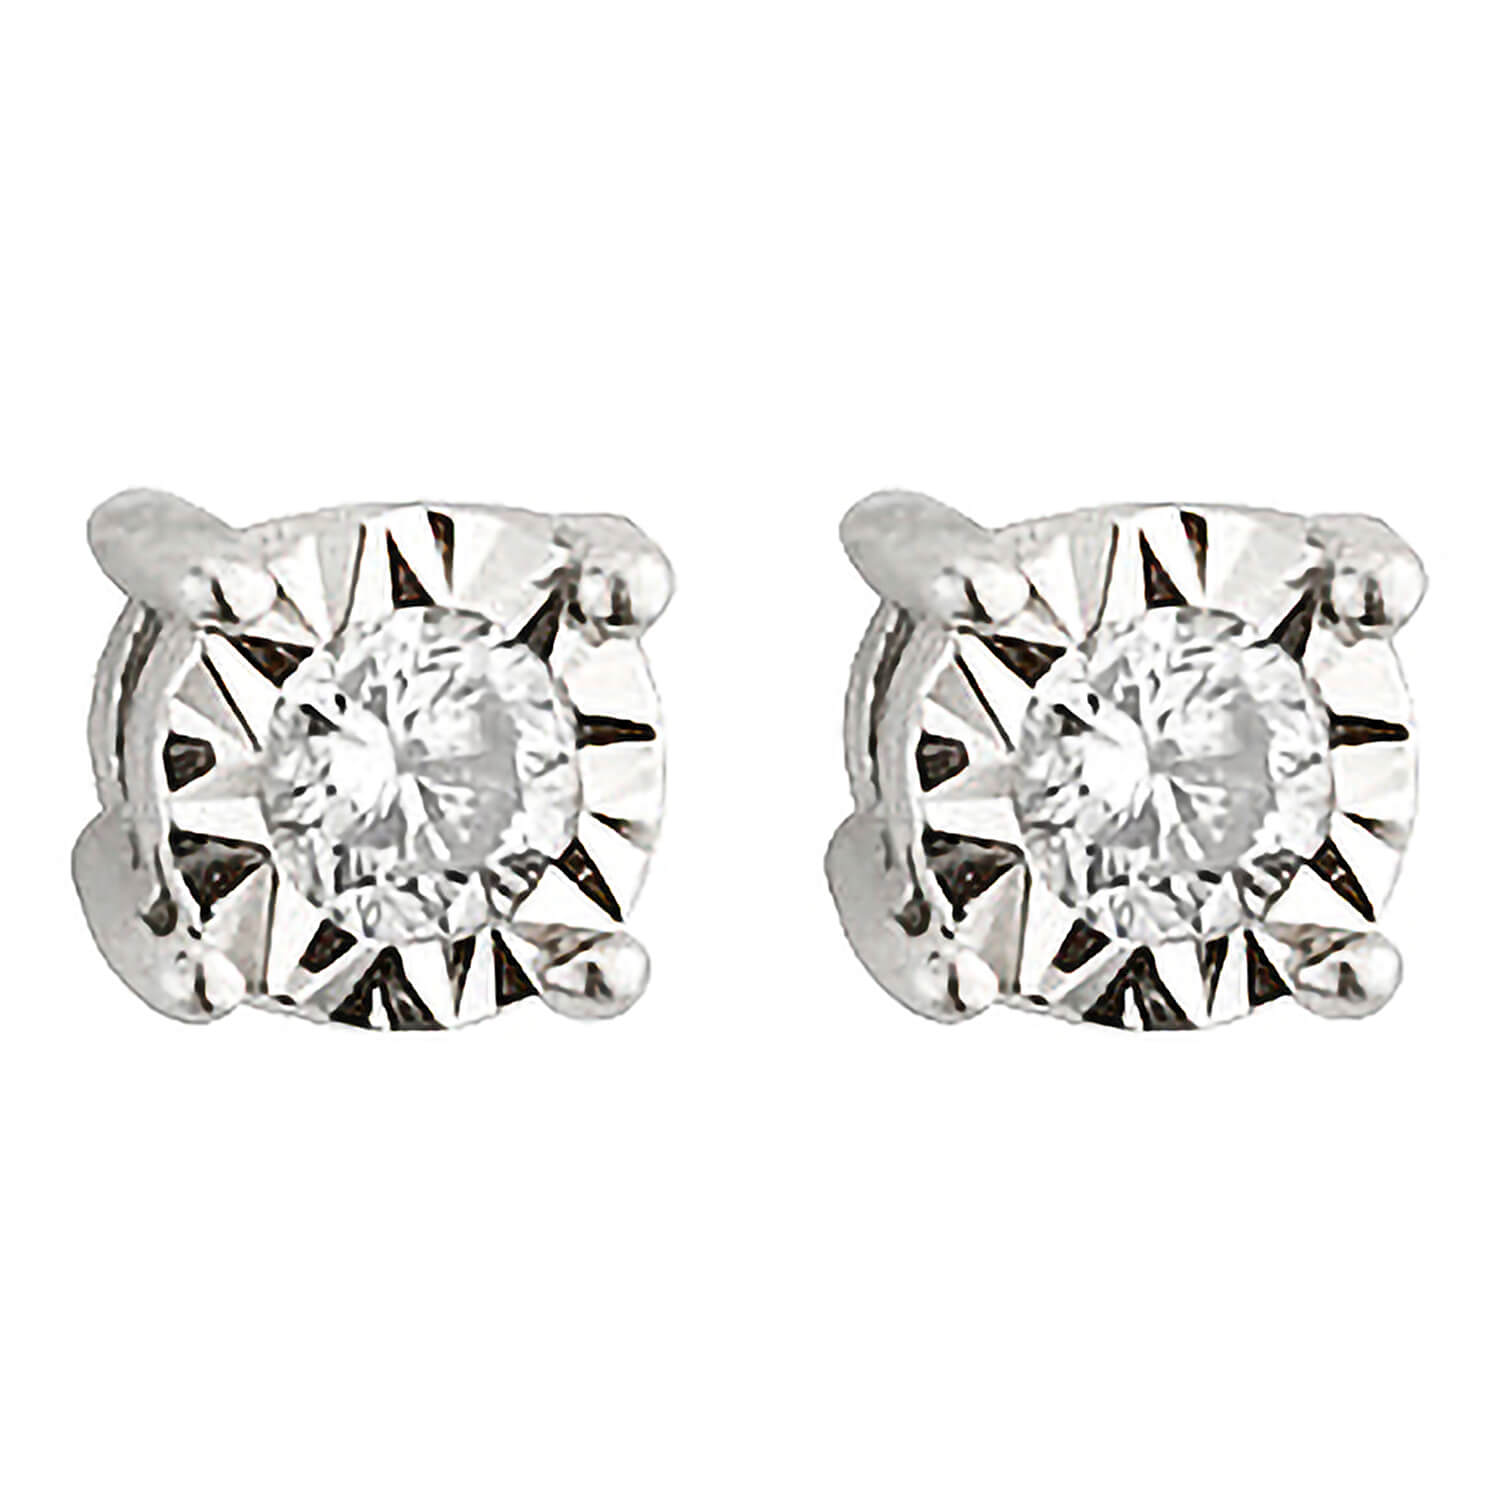 9ct white gold 0.12 carat diamond solitaire stud earrings